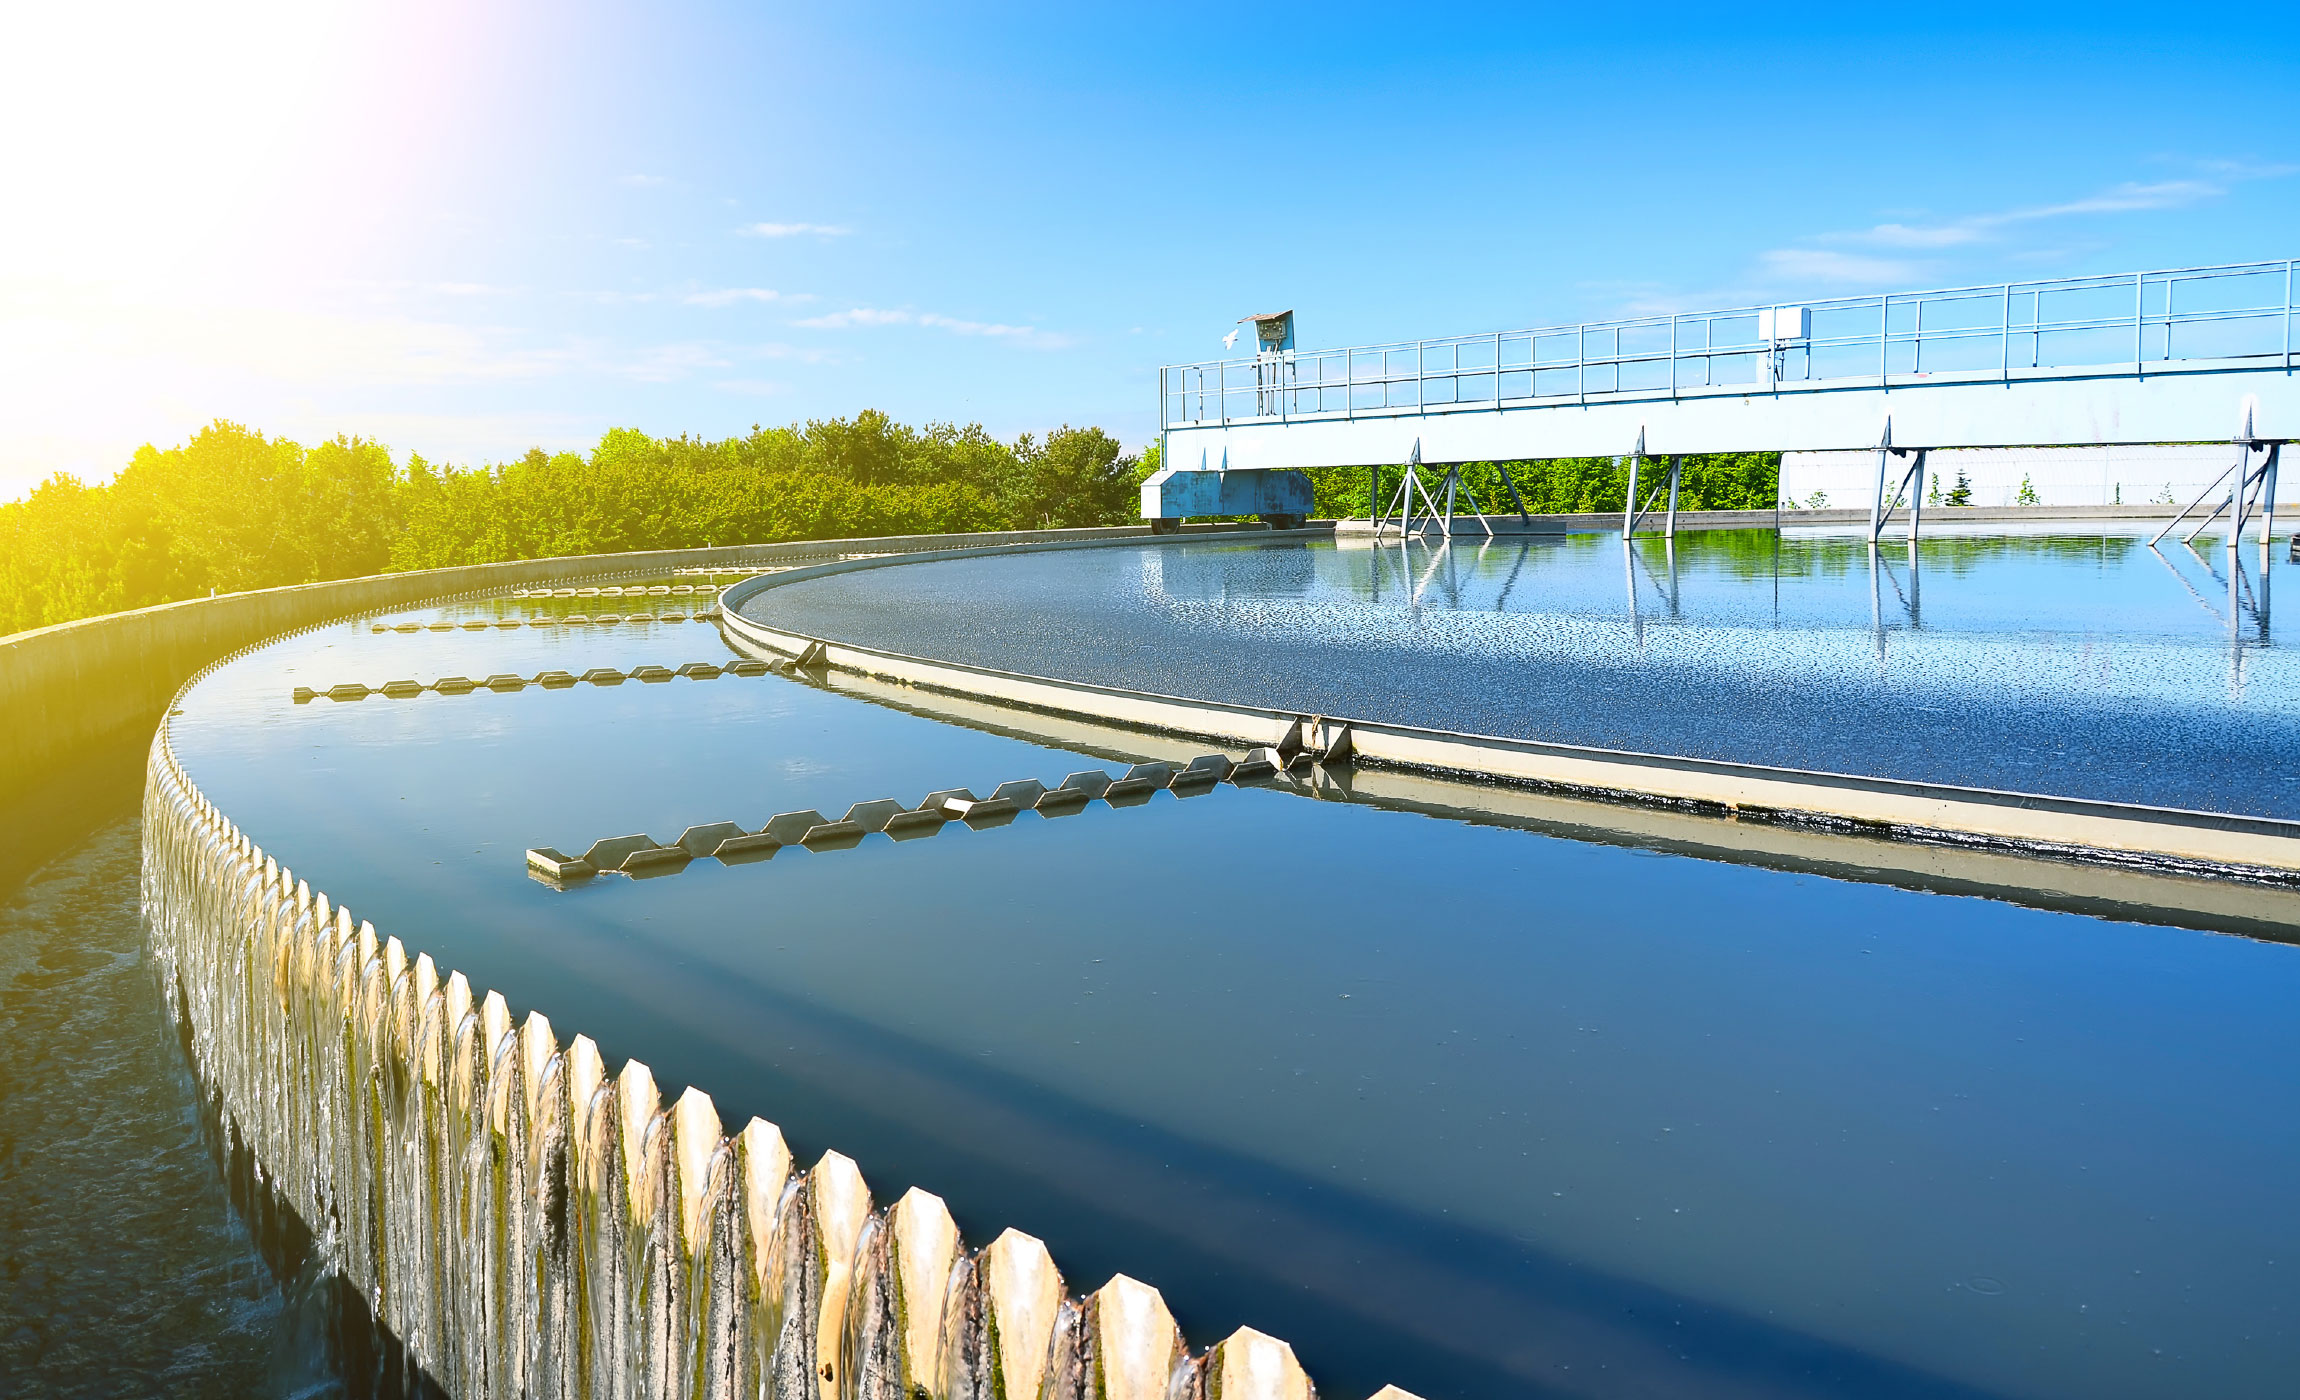 Rapid Analysis throughout the Wastewater Treatment Process